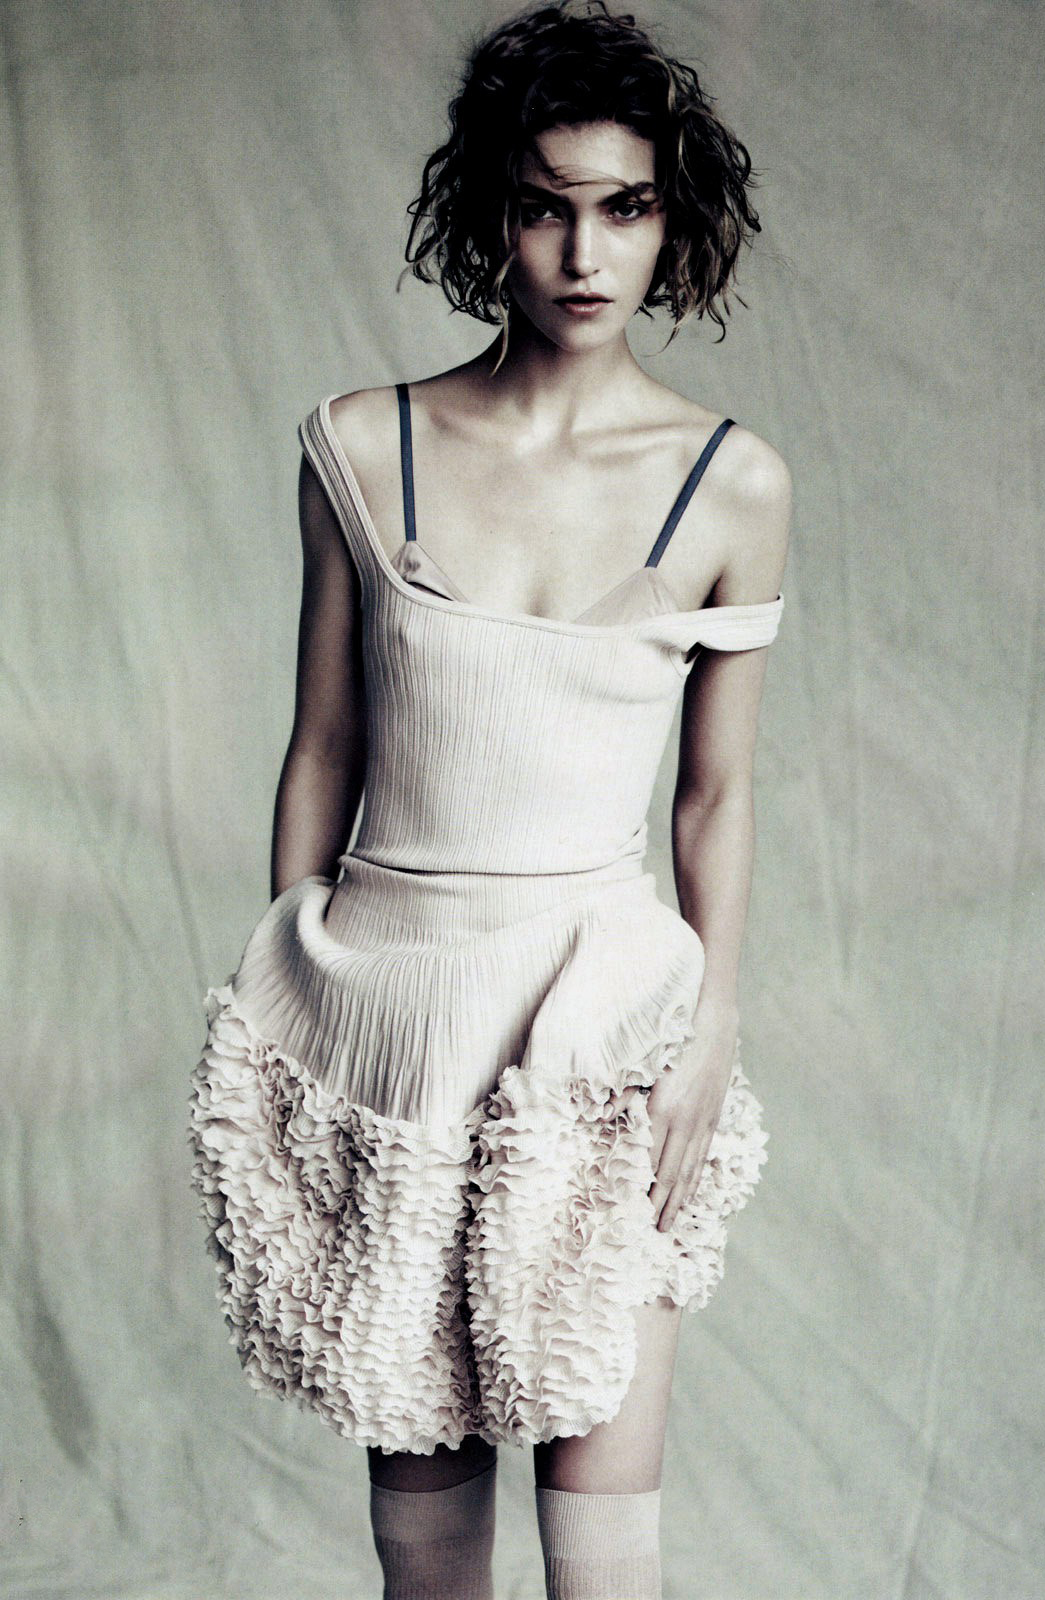 Azzedine Alaia thoughts on fashion +Arizona Muse wearing Azzedine Alaia dress photographed by Paolo Roversi & styled by Nicoletta Santoro for Sound of Silence / Vogue China April 2011 via www.fashionedbylove.co.uk british fashion blog